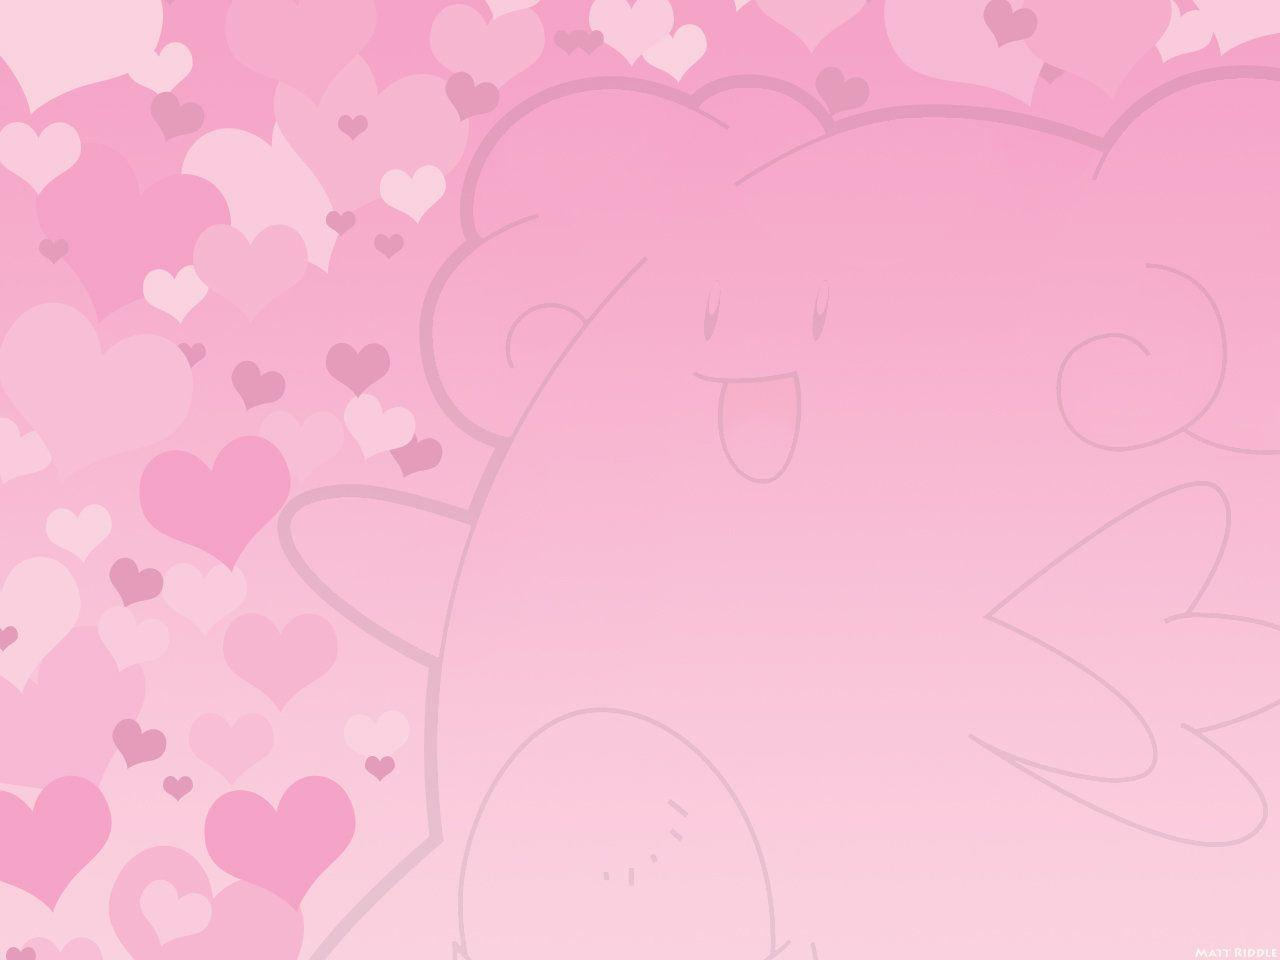 Blissey Wallpapers 1280x960 by MattRiddle